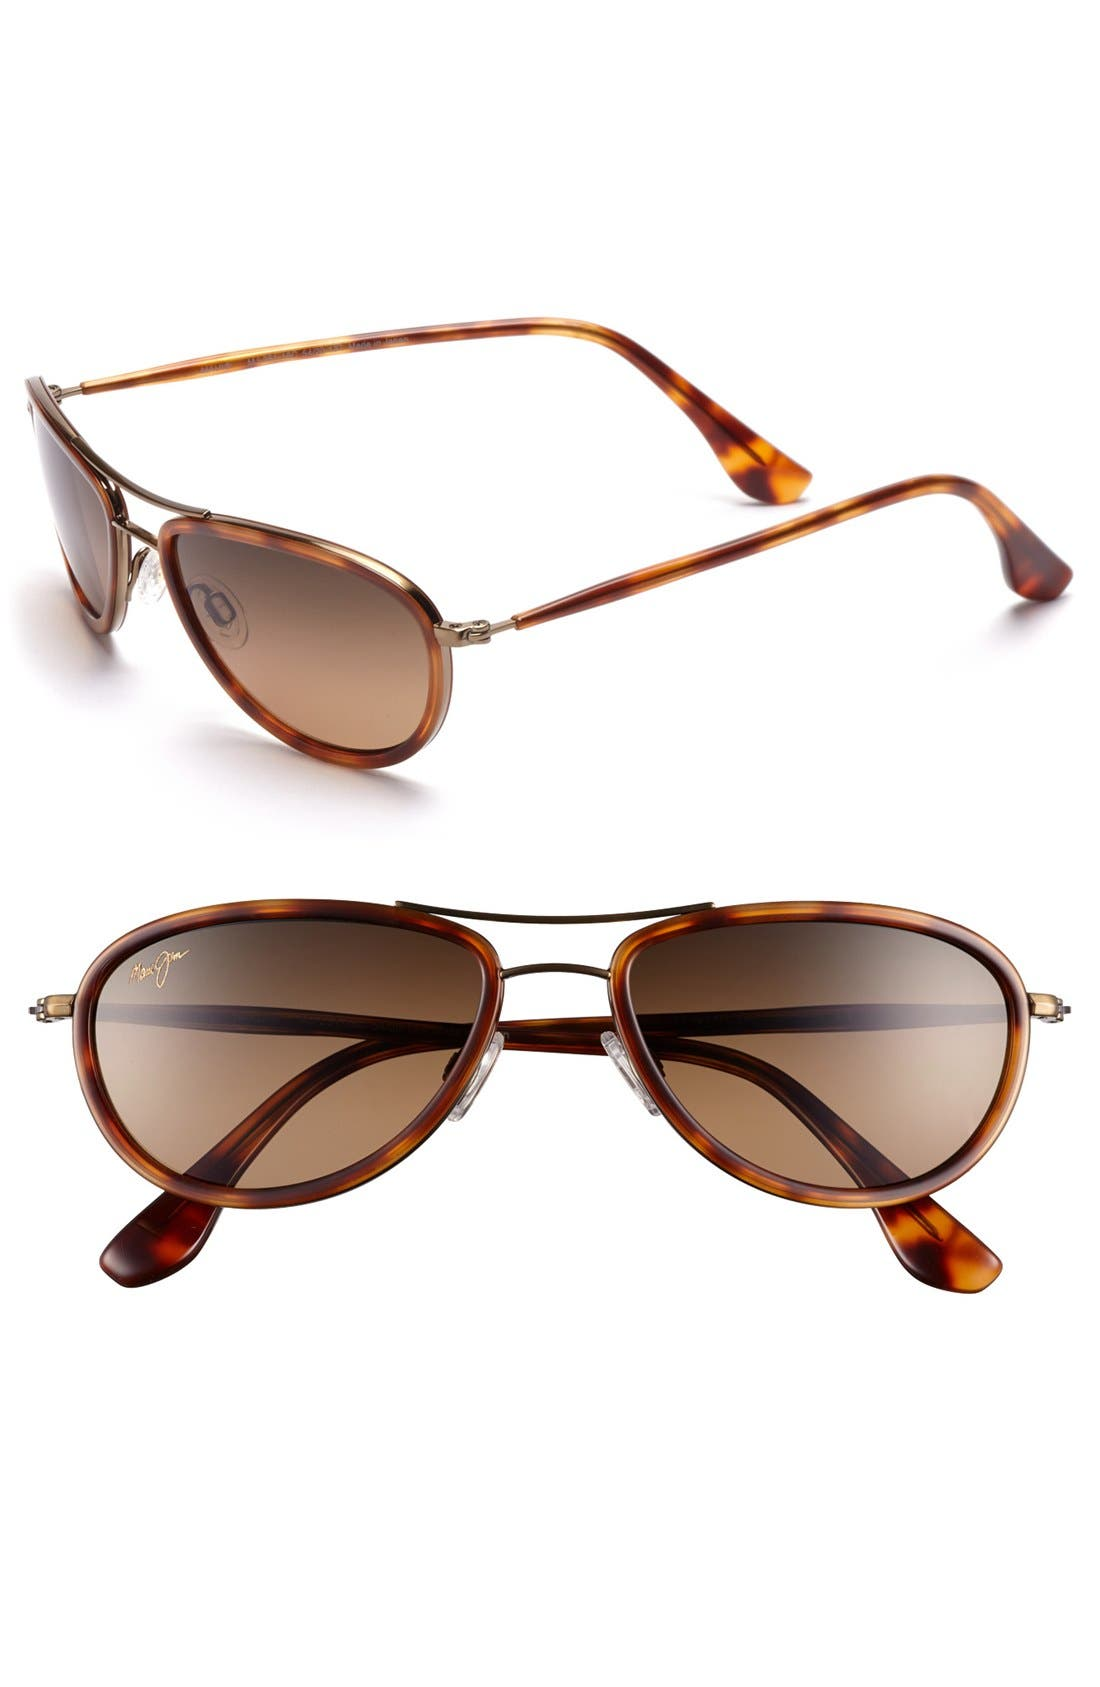 Main Image - Maui Jim 'Small - Kine' 54mm Sunglasses